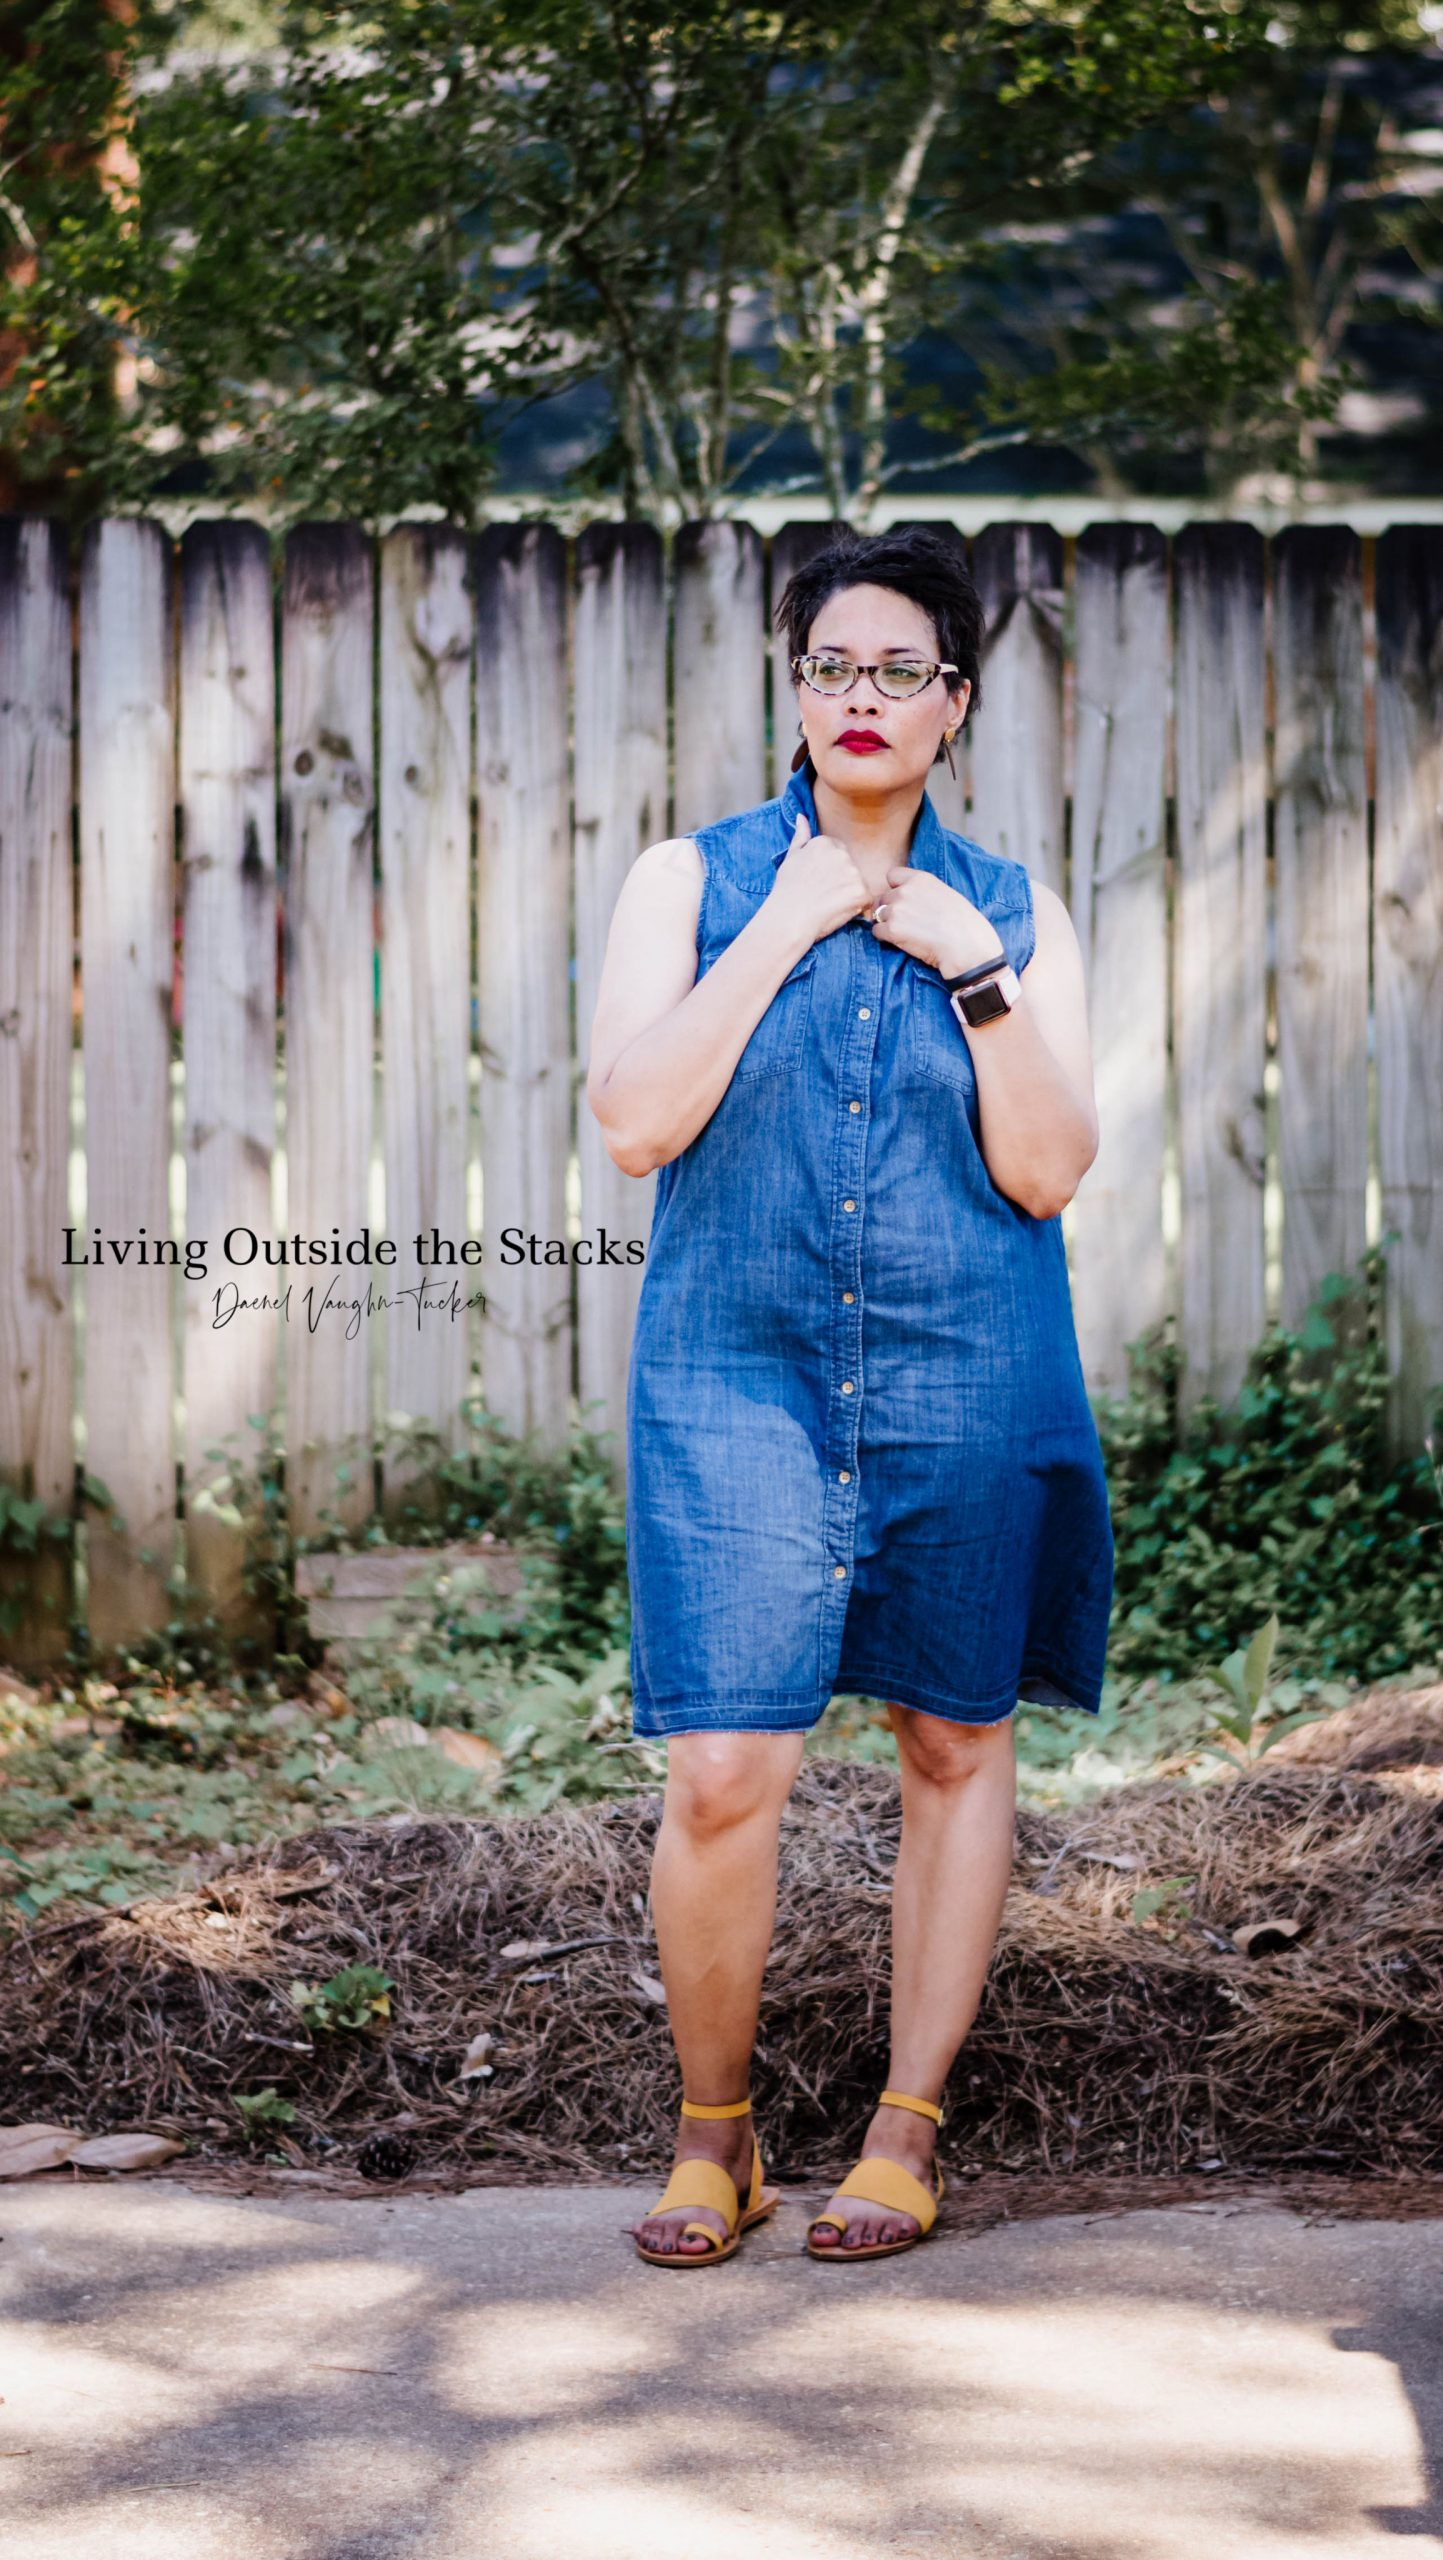 Daenel T {living outside the stacks}